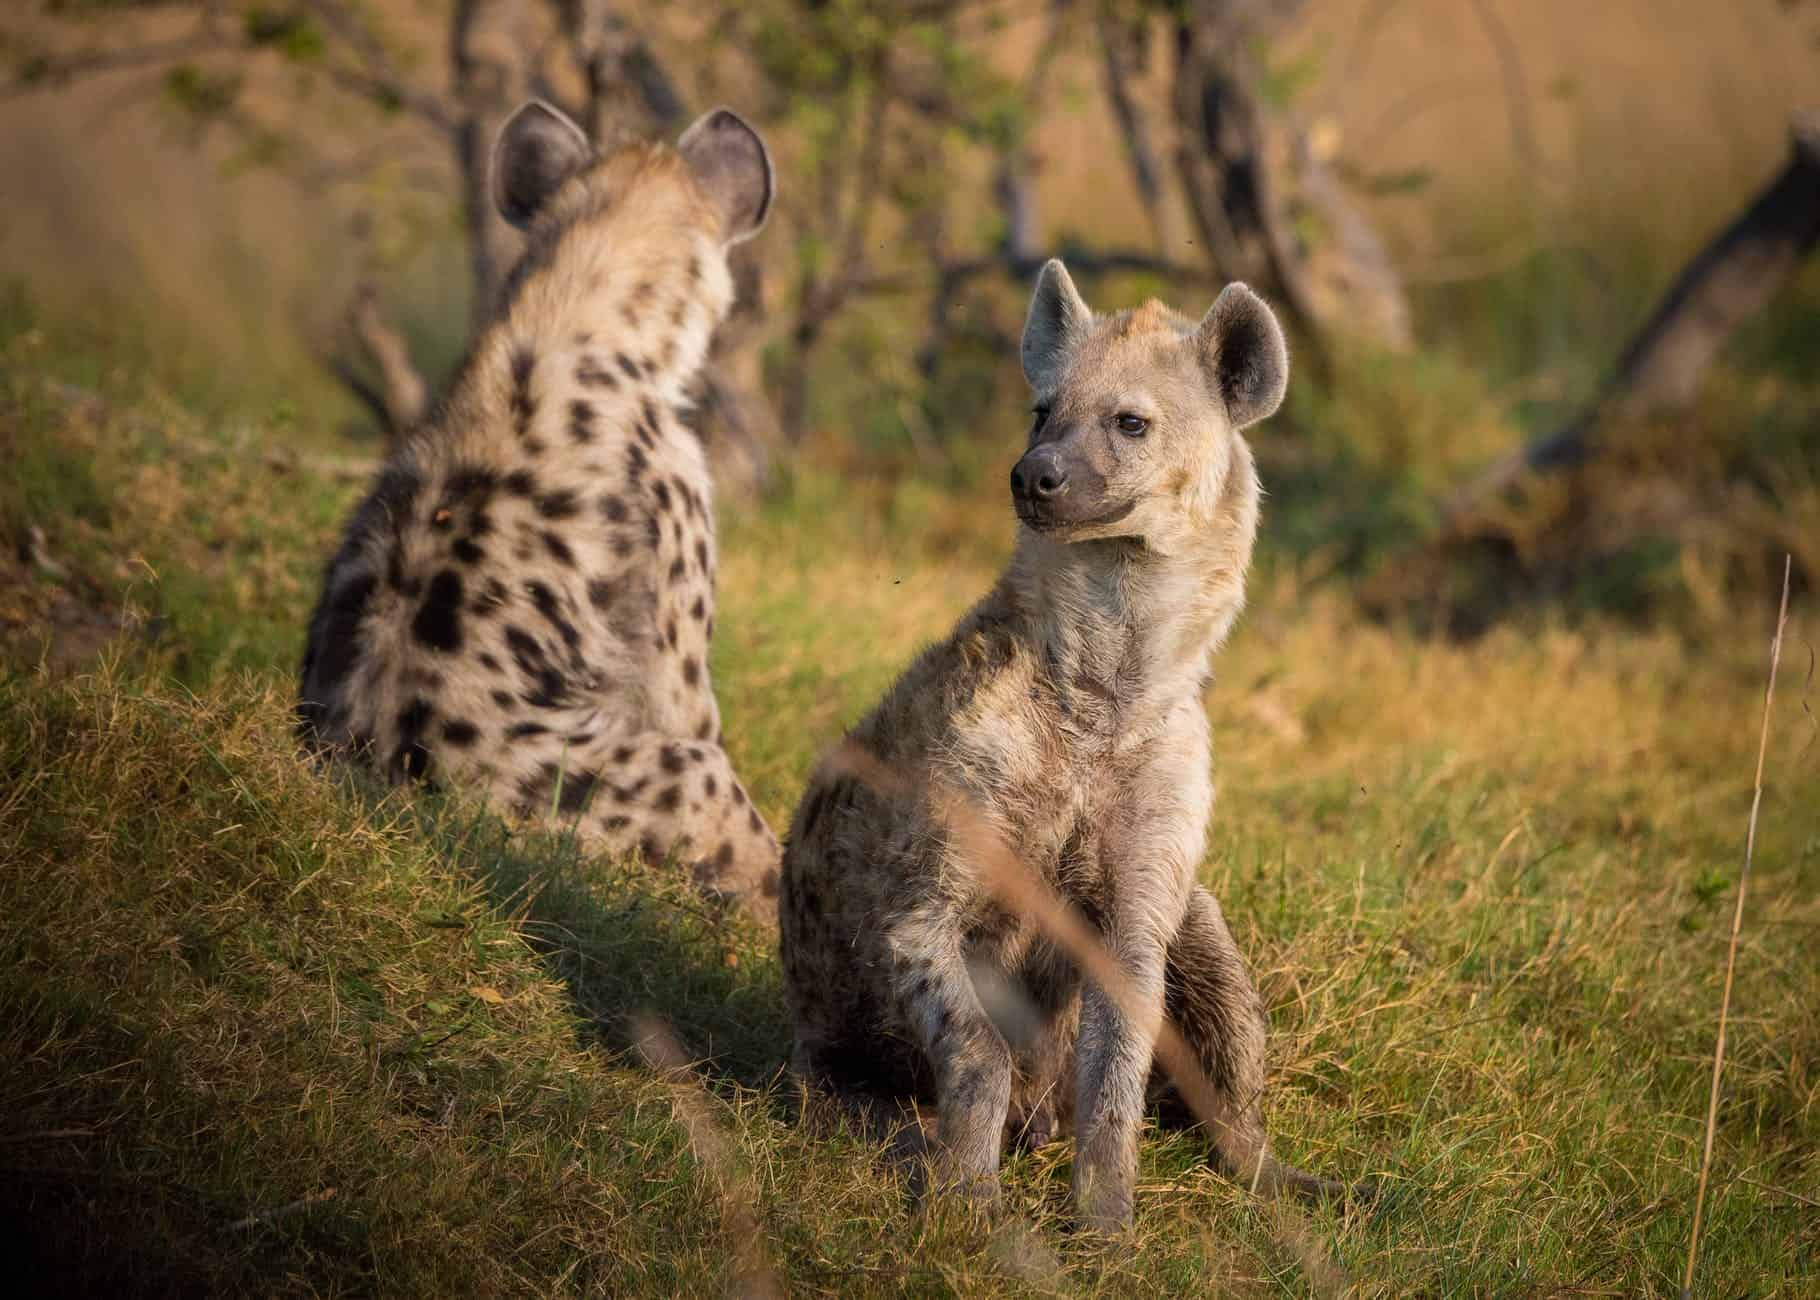 How do Hyenas communicate with each other?